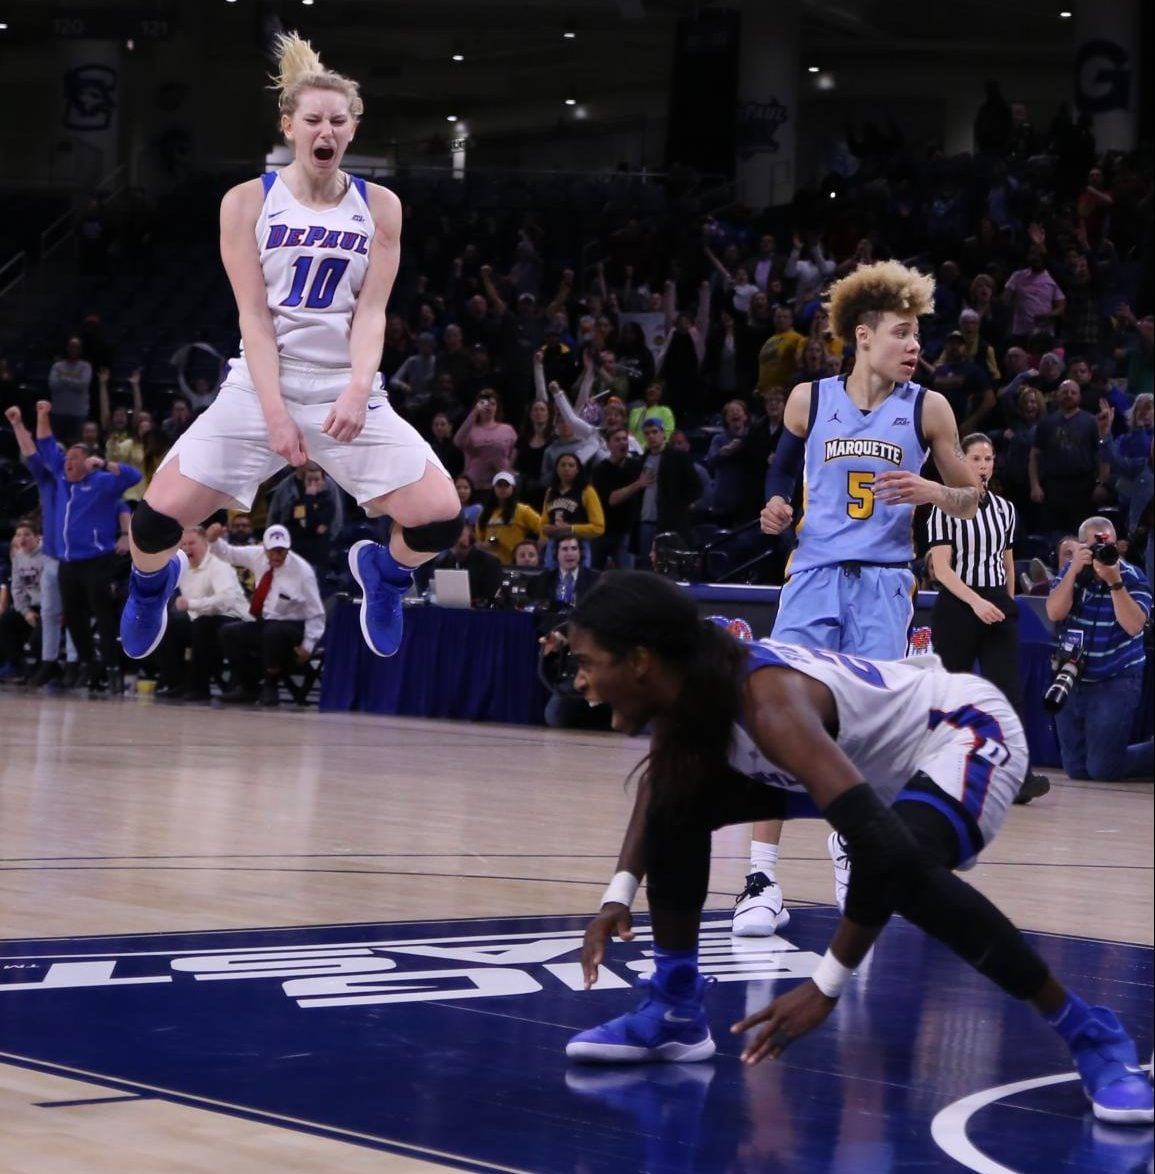 DePaul freshman guard Lexi Held reacts as junior forward Chante Stonewall slaps the floor after making the game-tying shot with five seconds left in the game against Marquette. Stonewall, Held, Sonya Morris and Kelly Campbell will represent DePaul in the  2019 USA Basketball 3×3 National Championships on Friday and Saturday in Las Vegas.